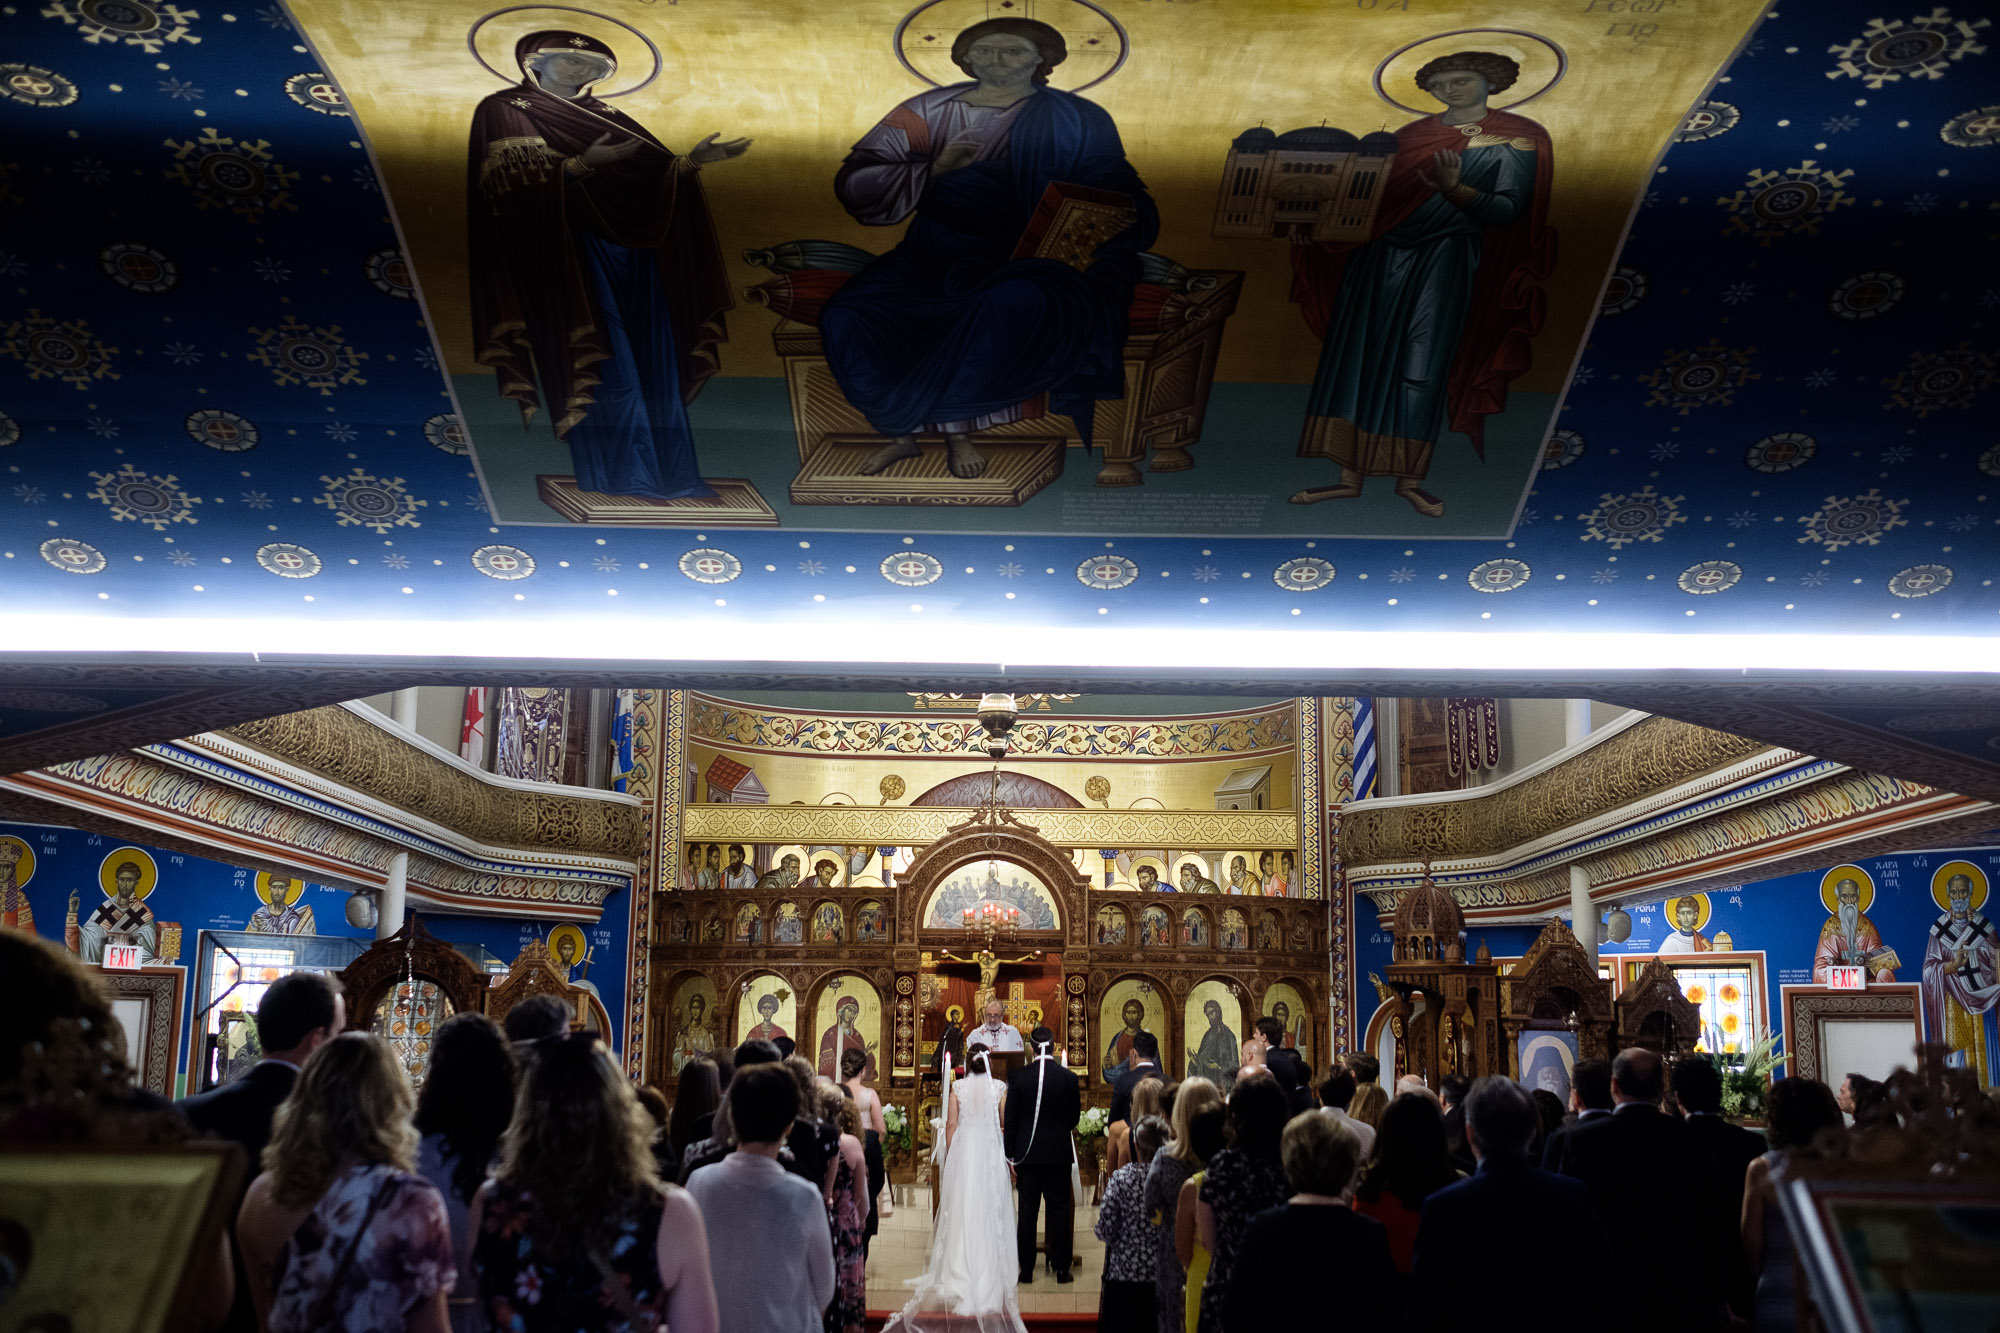 An overall wedding ceremony photograph from Katherine + Kosta's wedding ceremony at St. George's Greek Orthodox Church in Toronto.